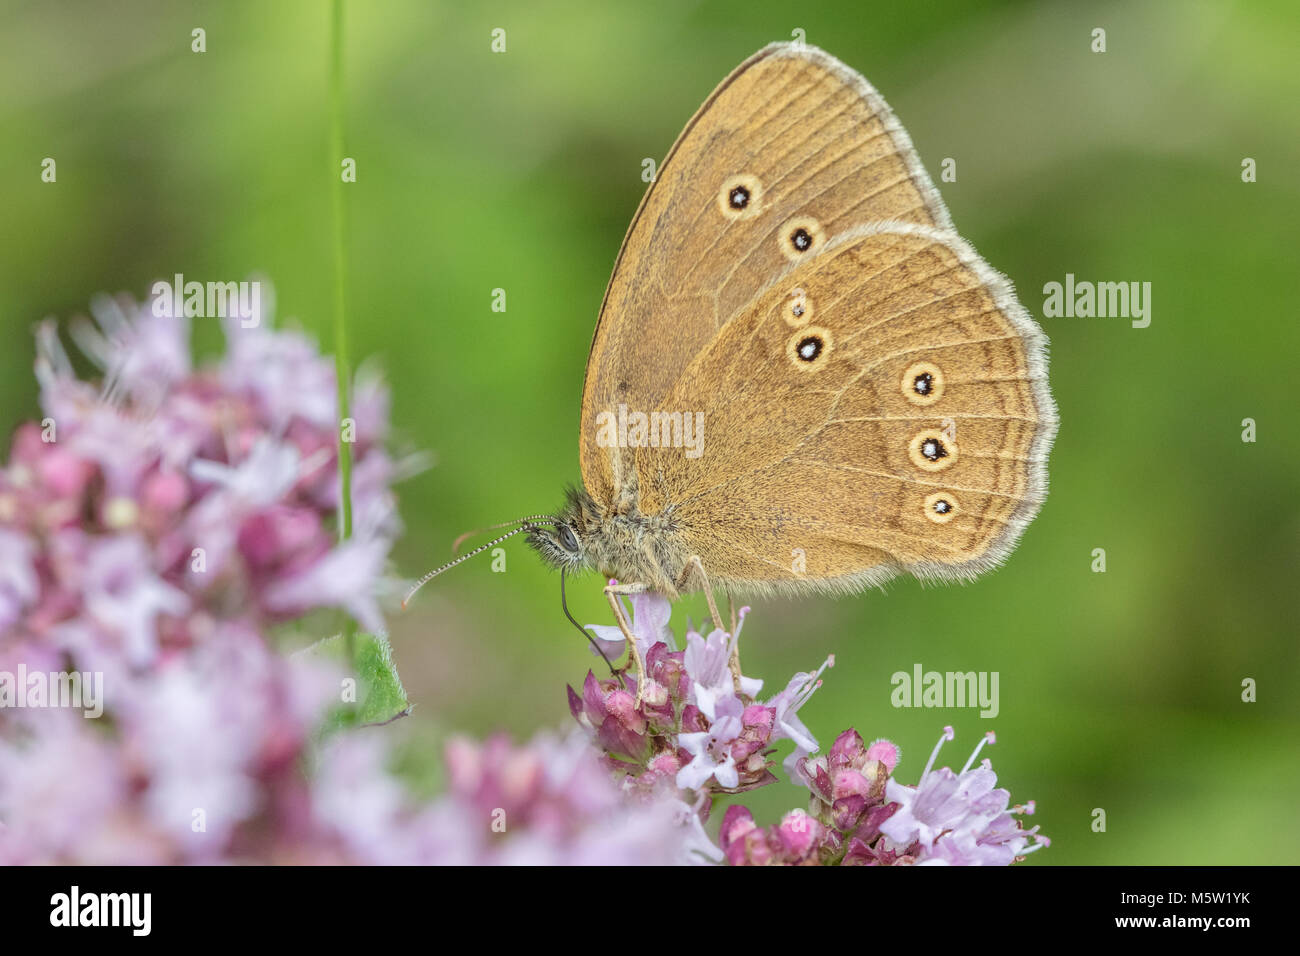 Ringlet butterfly sitting on blossom - Stock Image